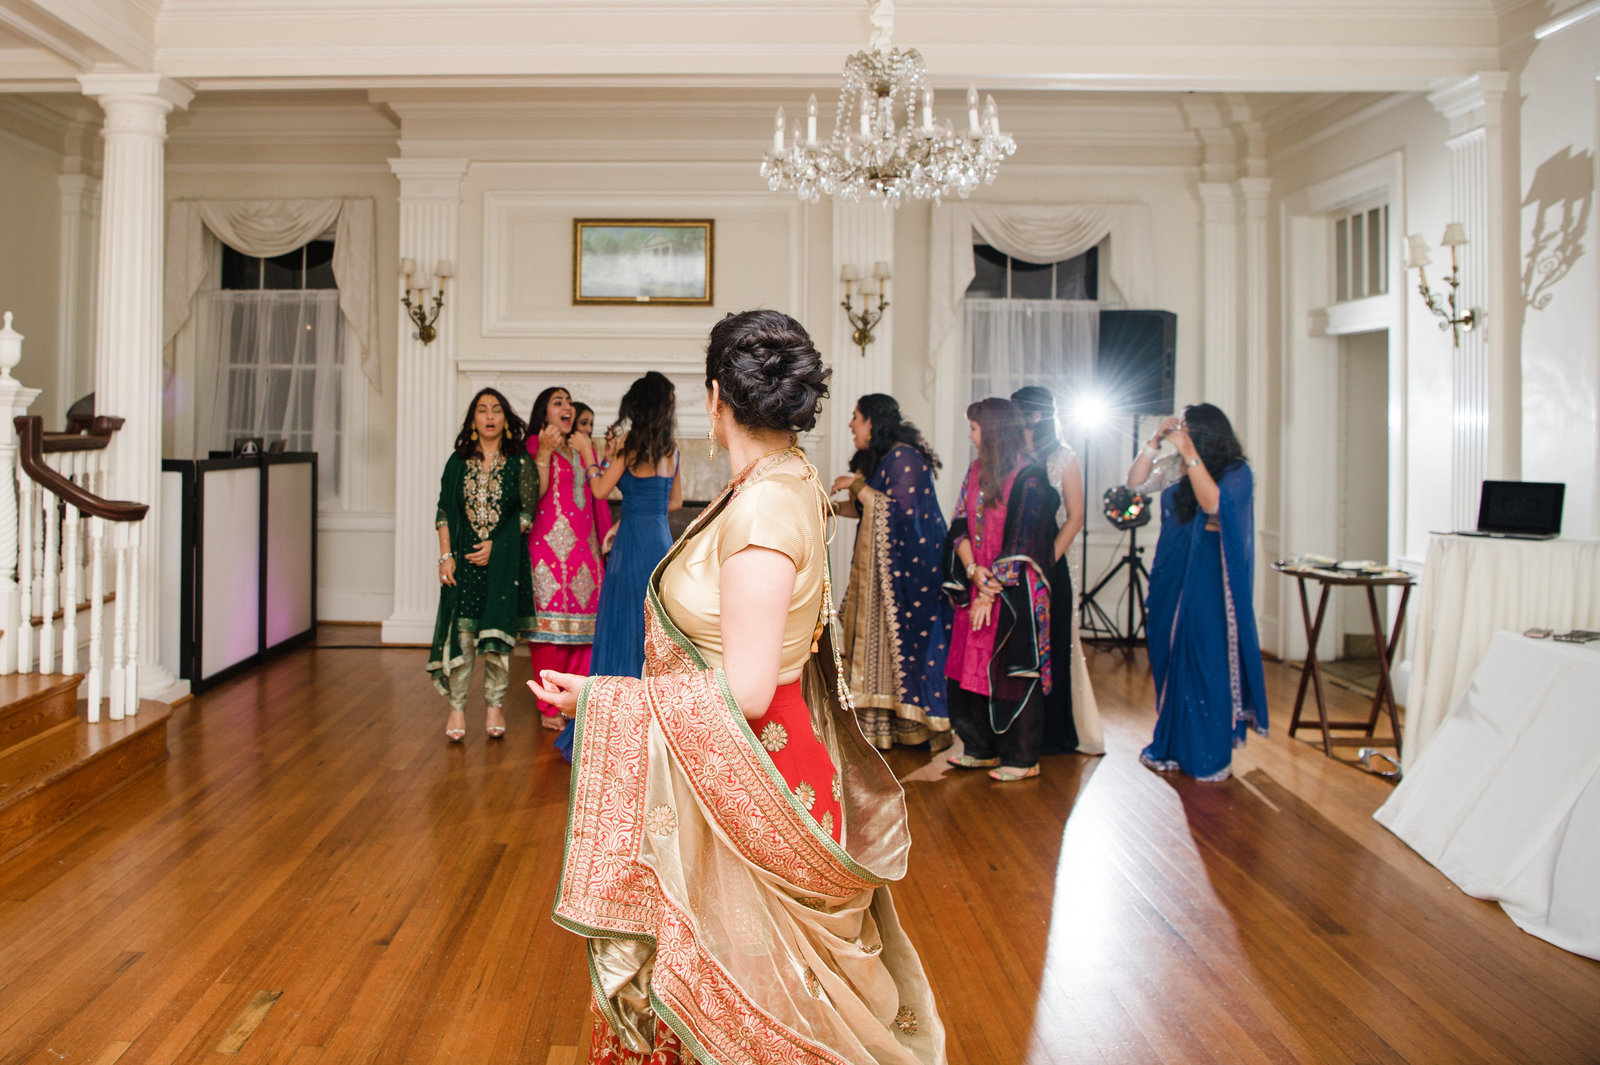 Minhas-Sohail Wedding by The Hill Studios-521